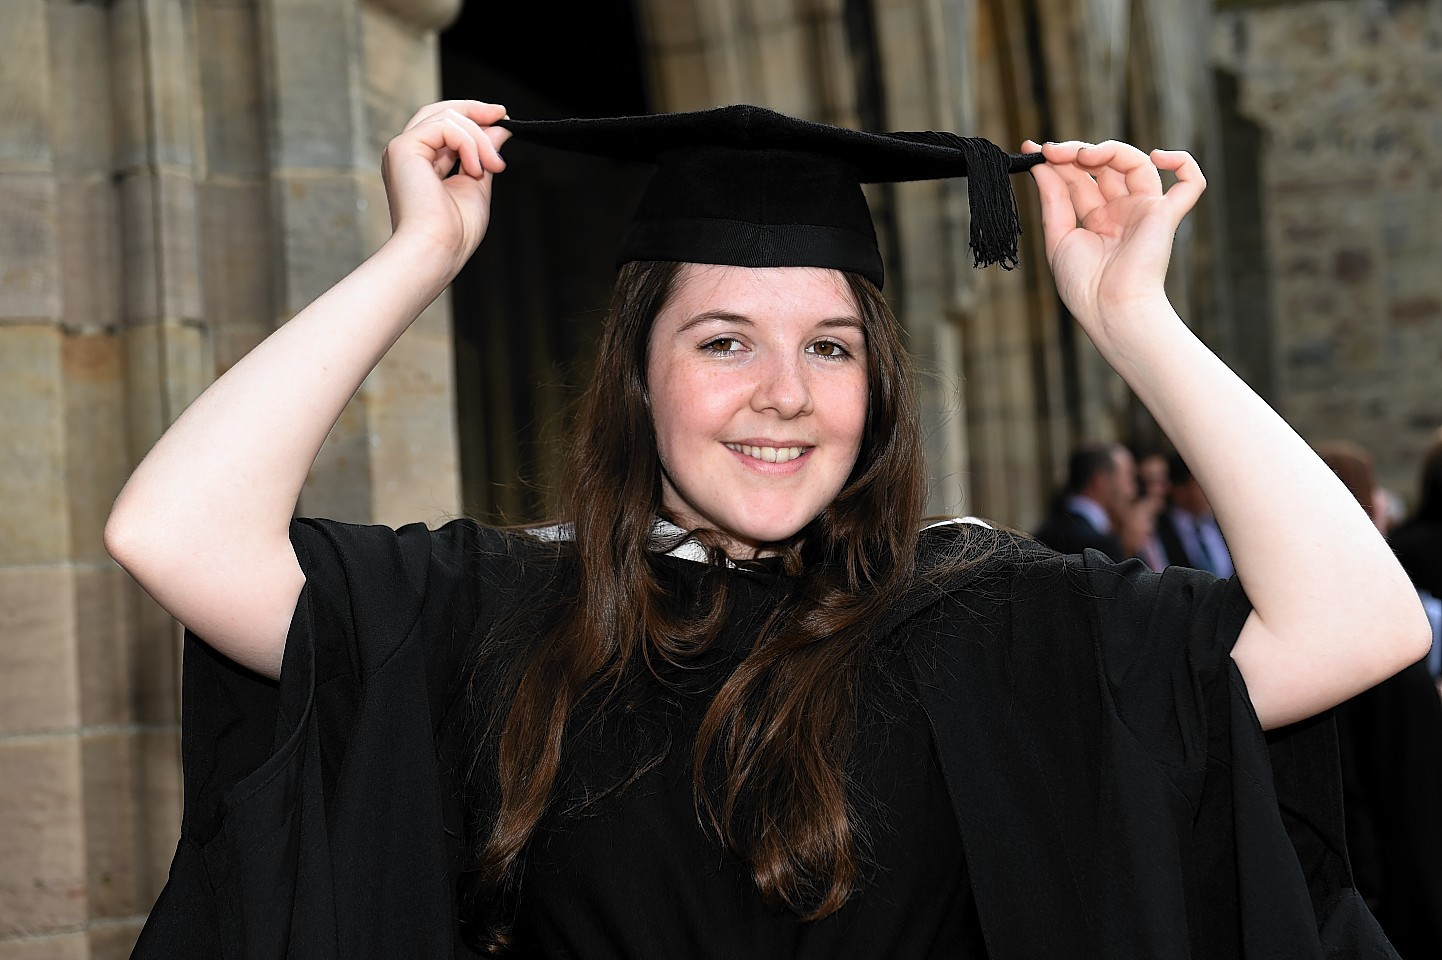 Lily Scanlon graduating at Elphinstone Hall. Picture by Kenny Elrick